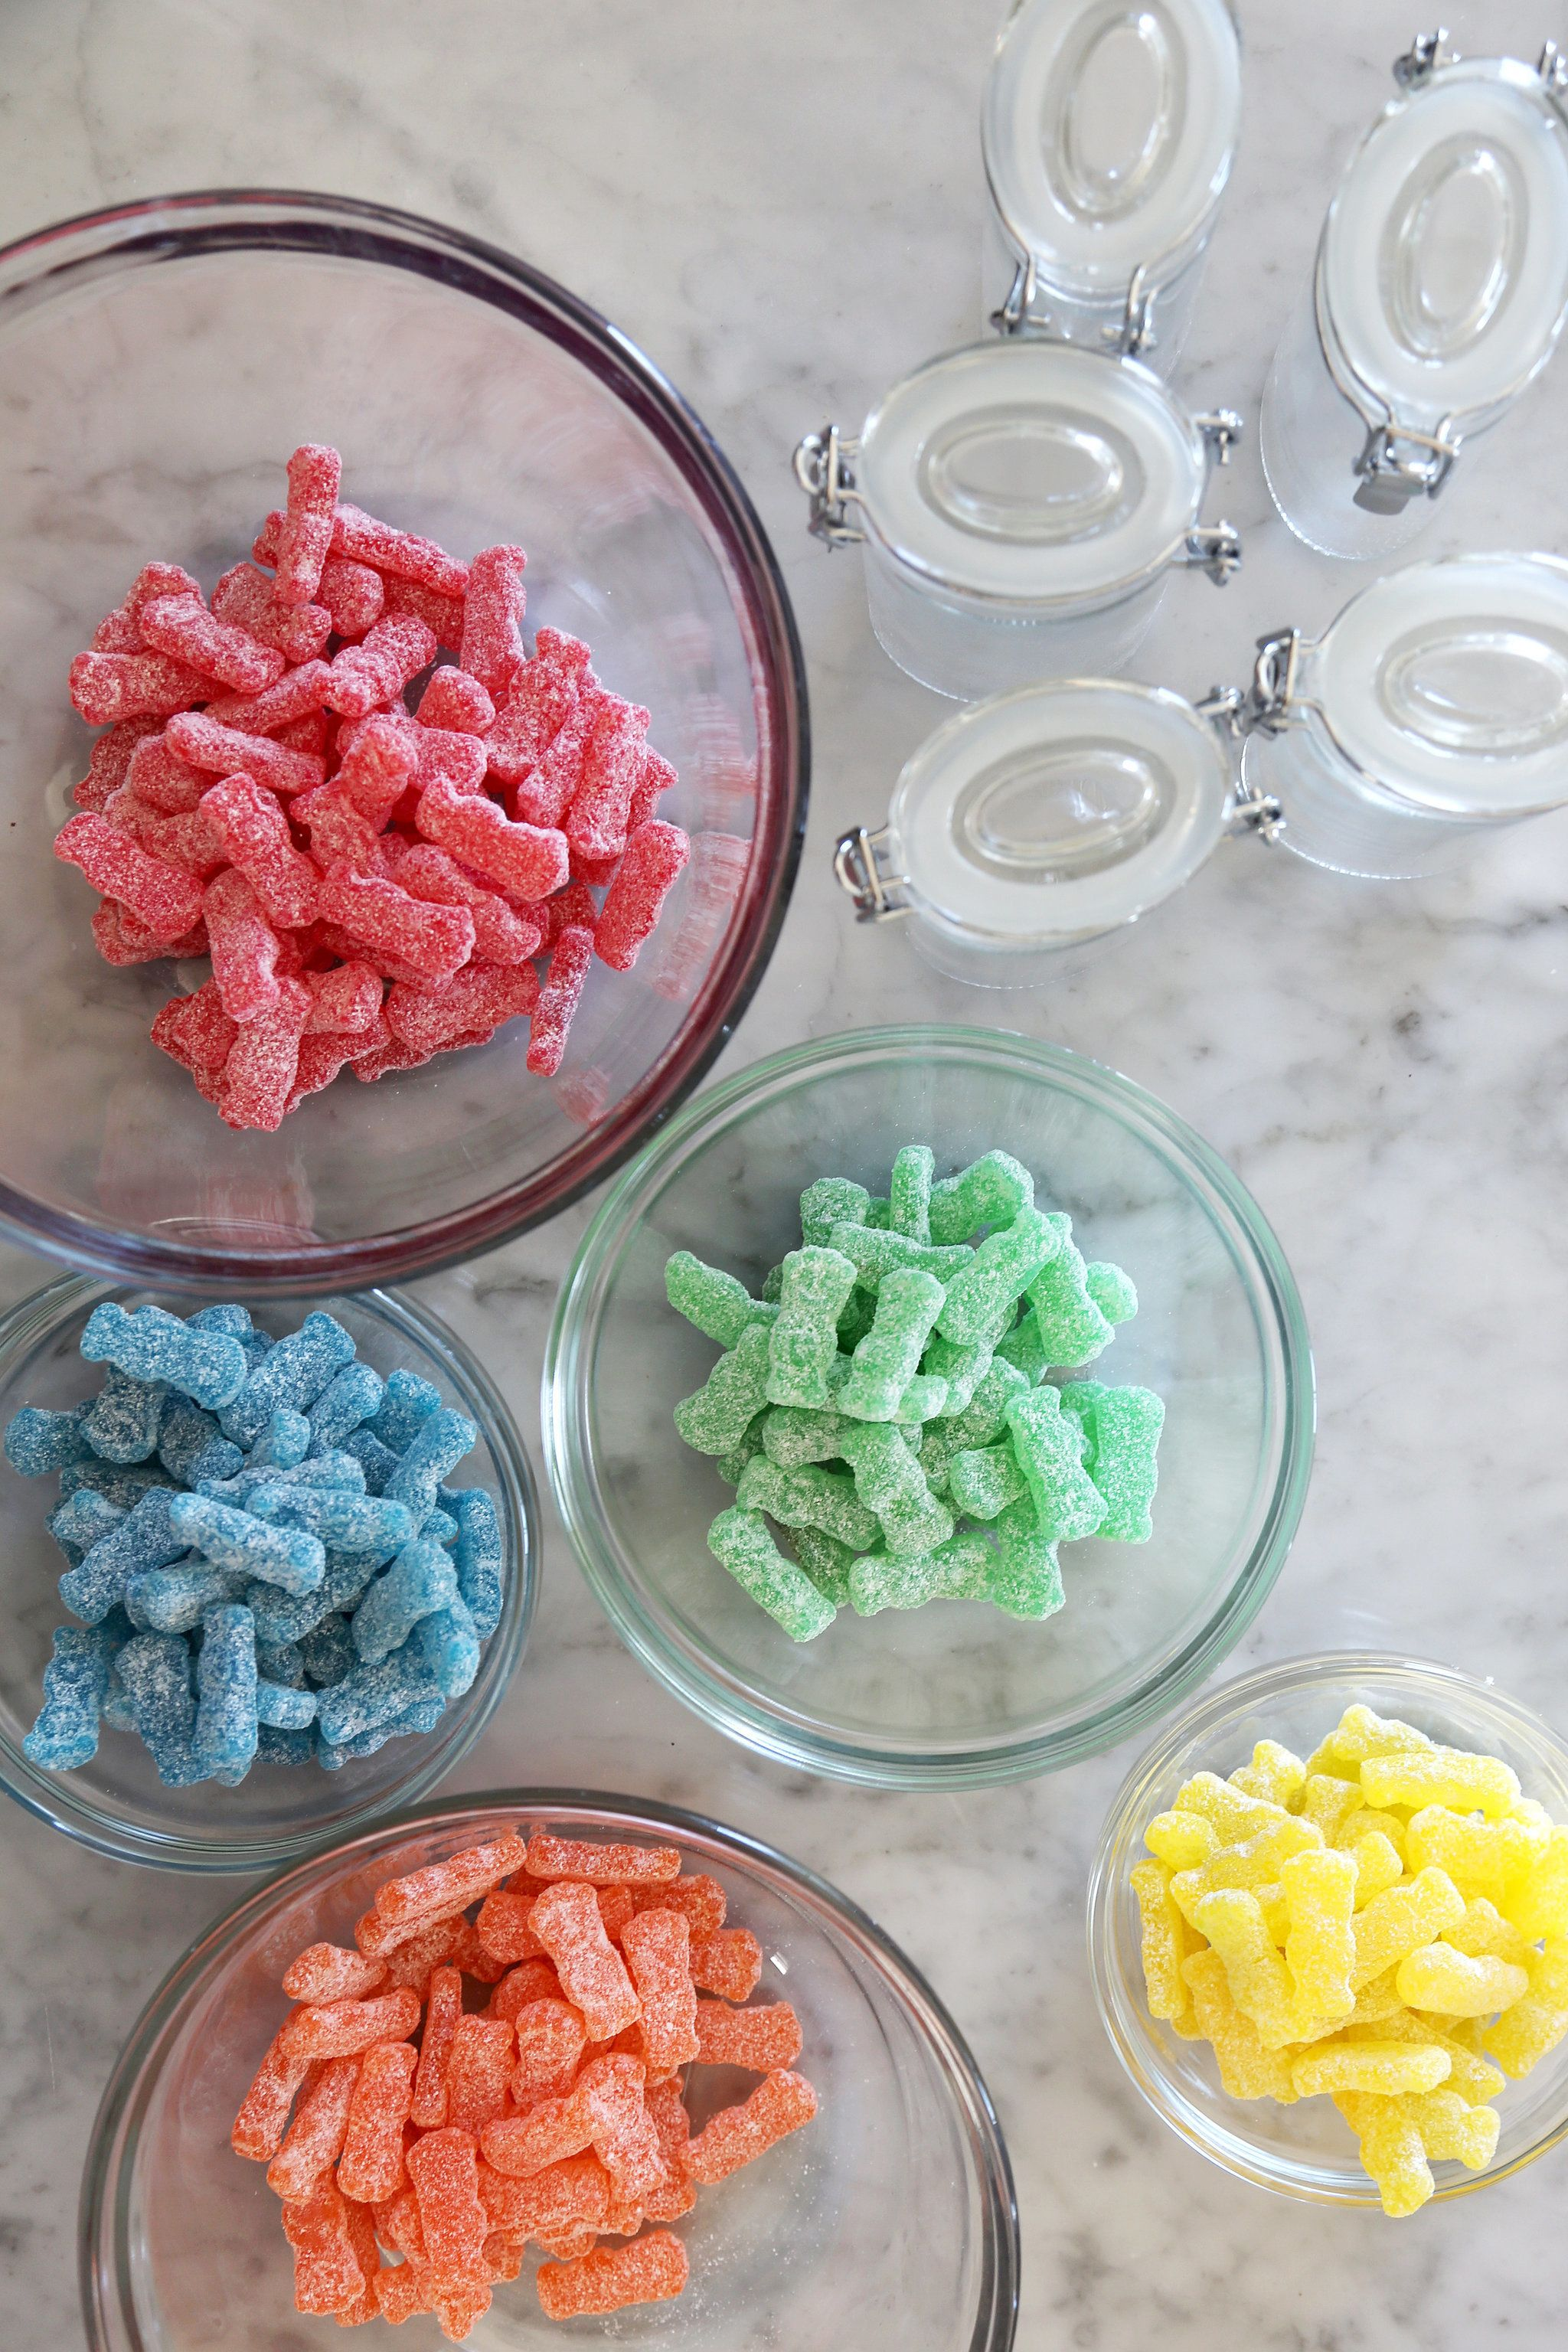 For A Real Sour Then Sweet Treat Infuse Vodka With Sour Patch Kids Candies Recipe Sour Patch Kids Infused Vodka Sour Patch